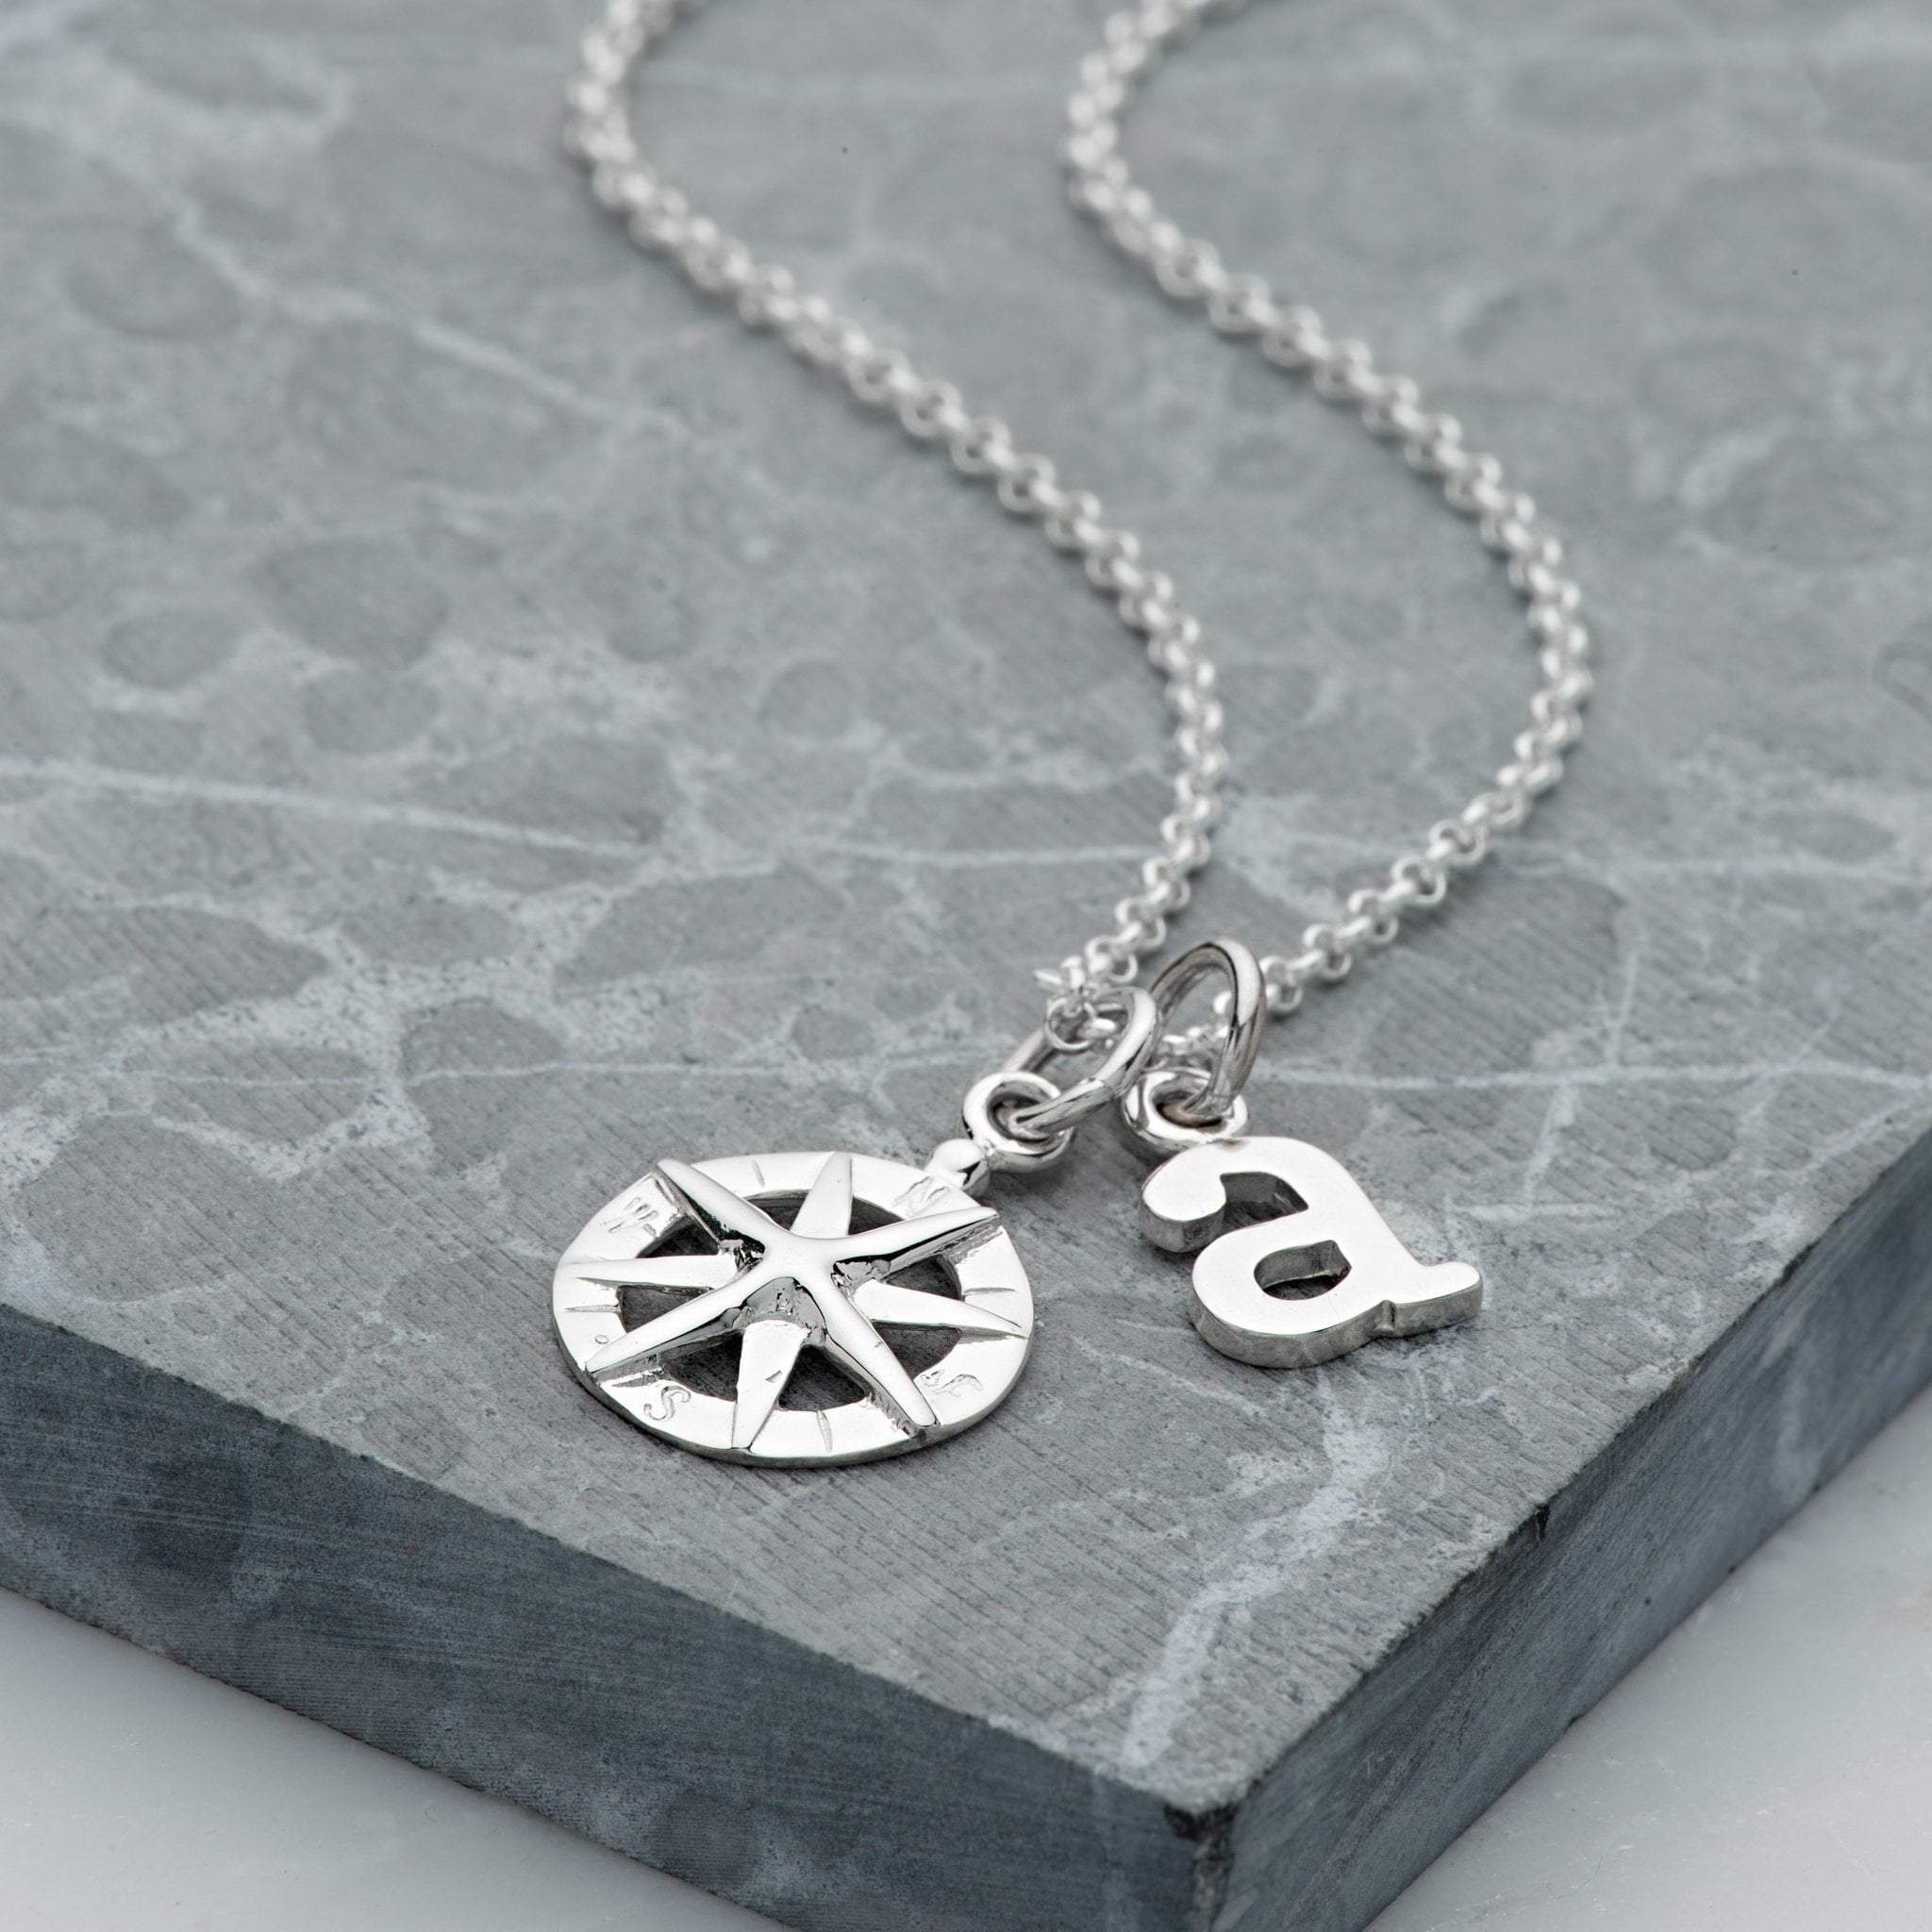 Personalised Silver Compass Necklace - Lily Charmed